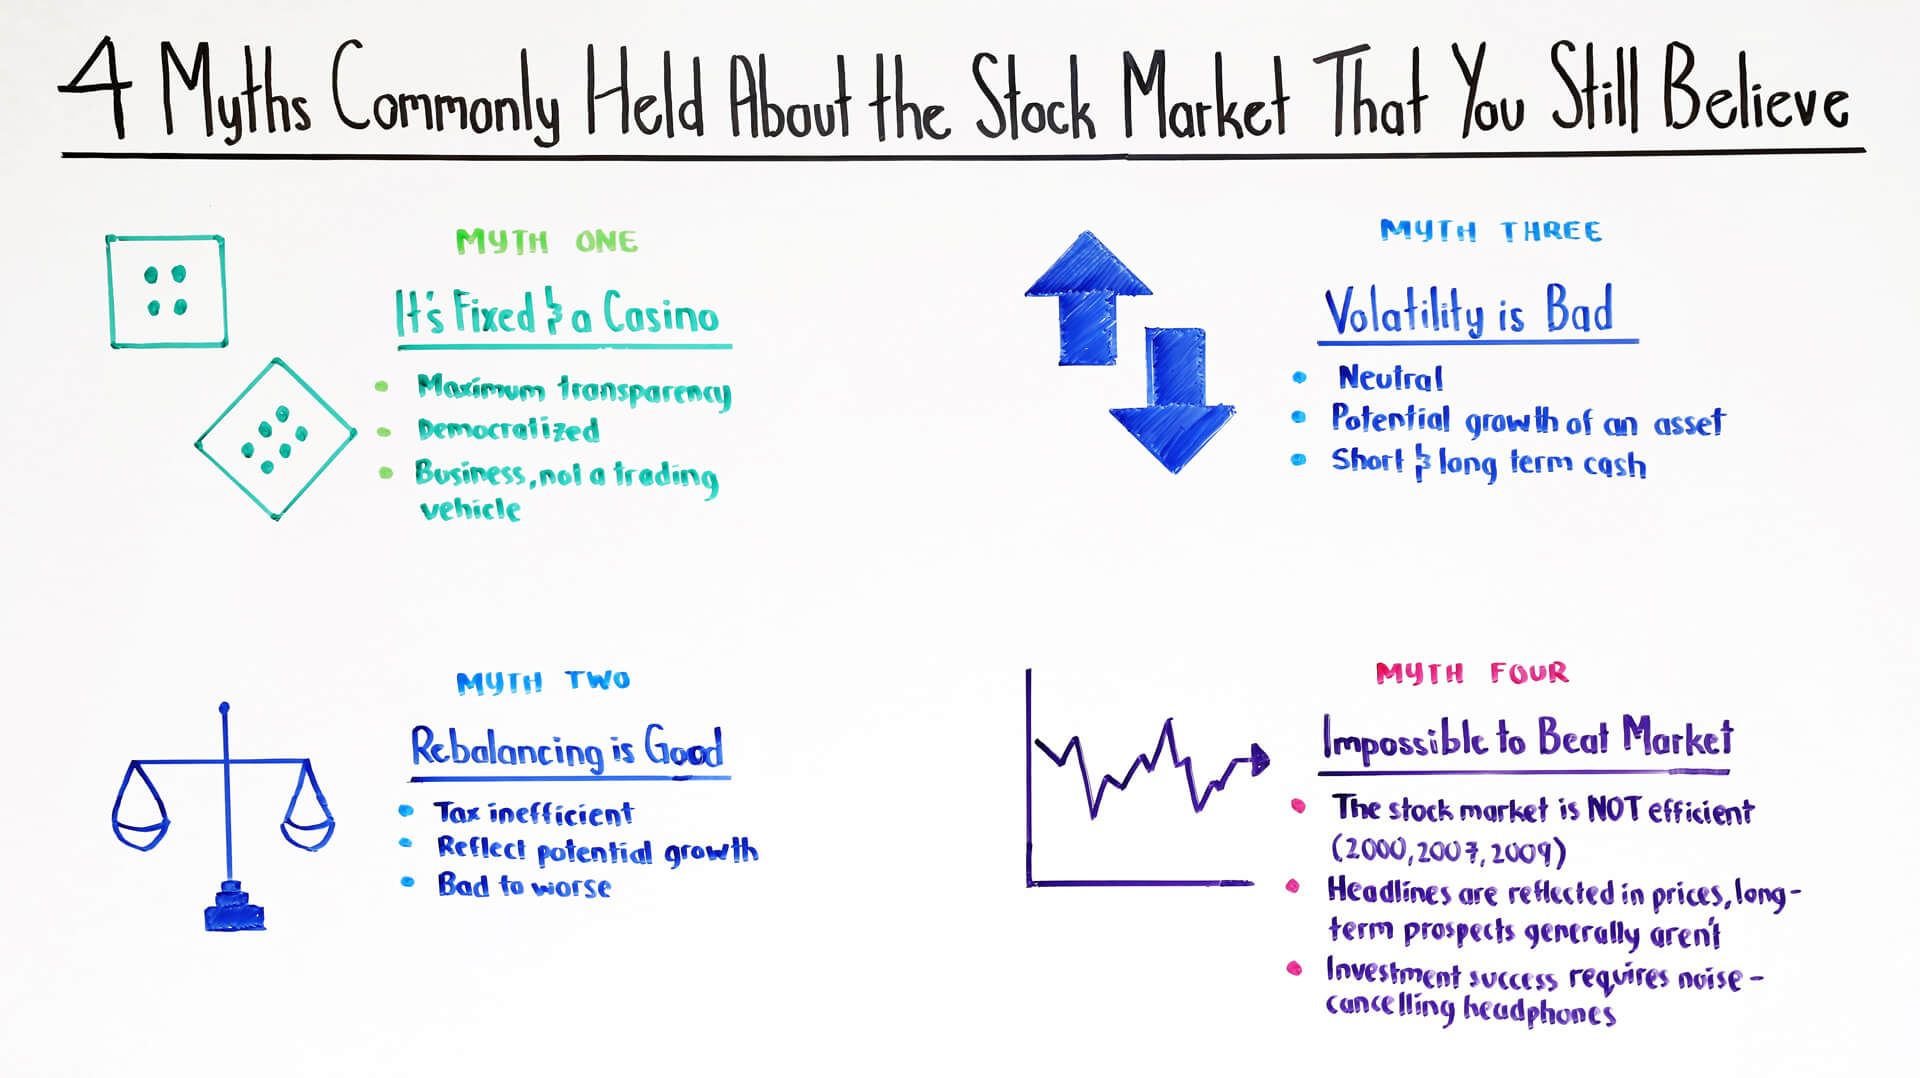 4 Myths Commonly Held About the Stock Market That You Still Believe